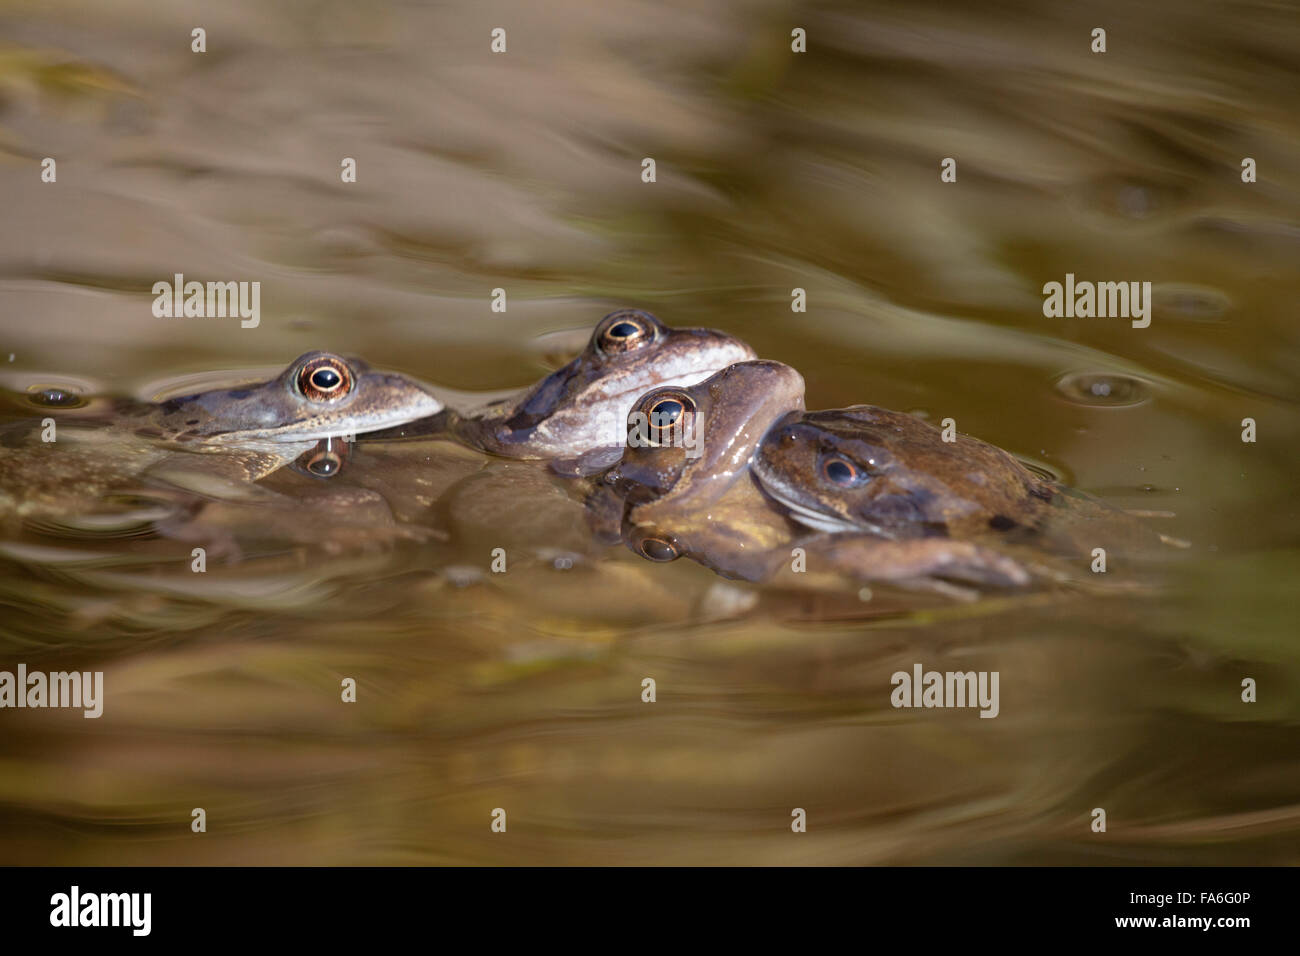 Common frogs (Rana temporaria) mating in a garden pond - Stock Image